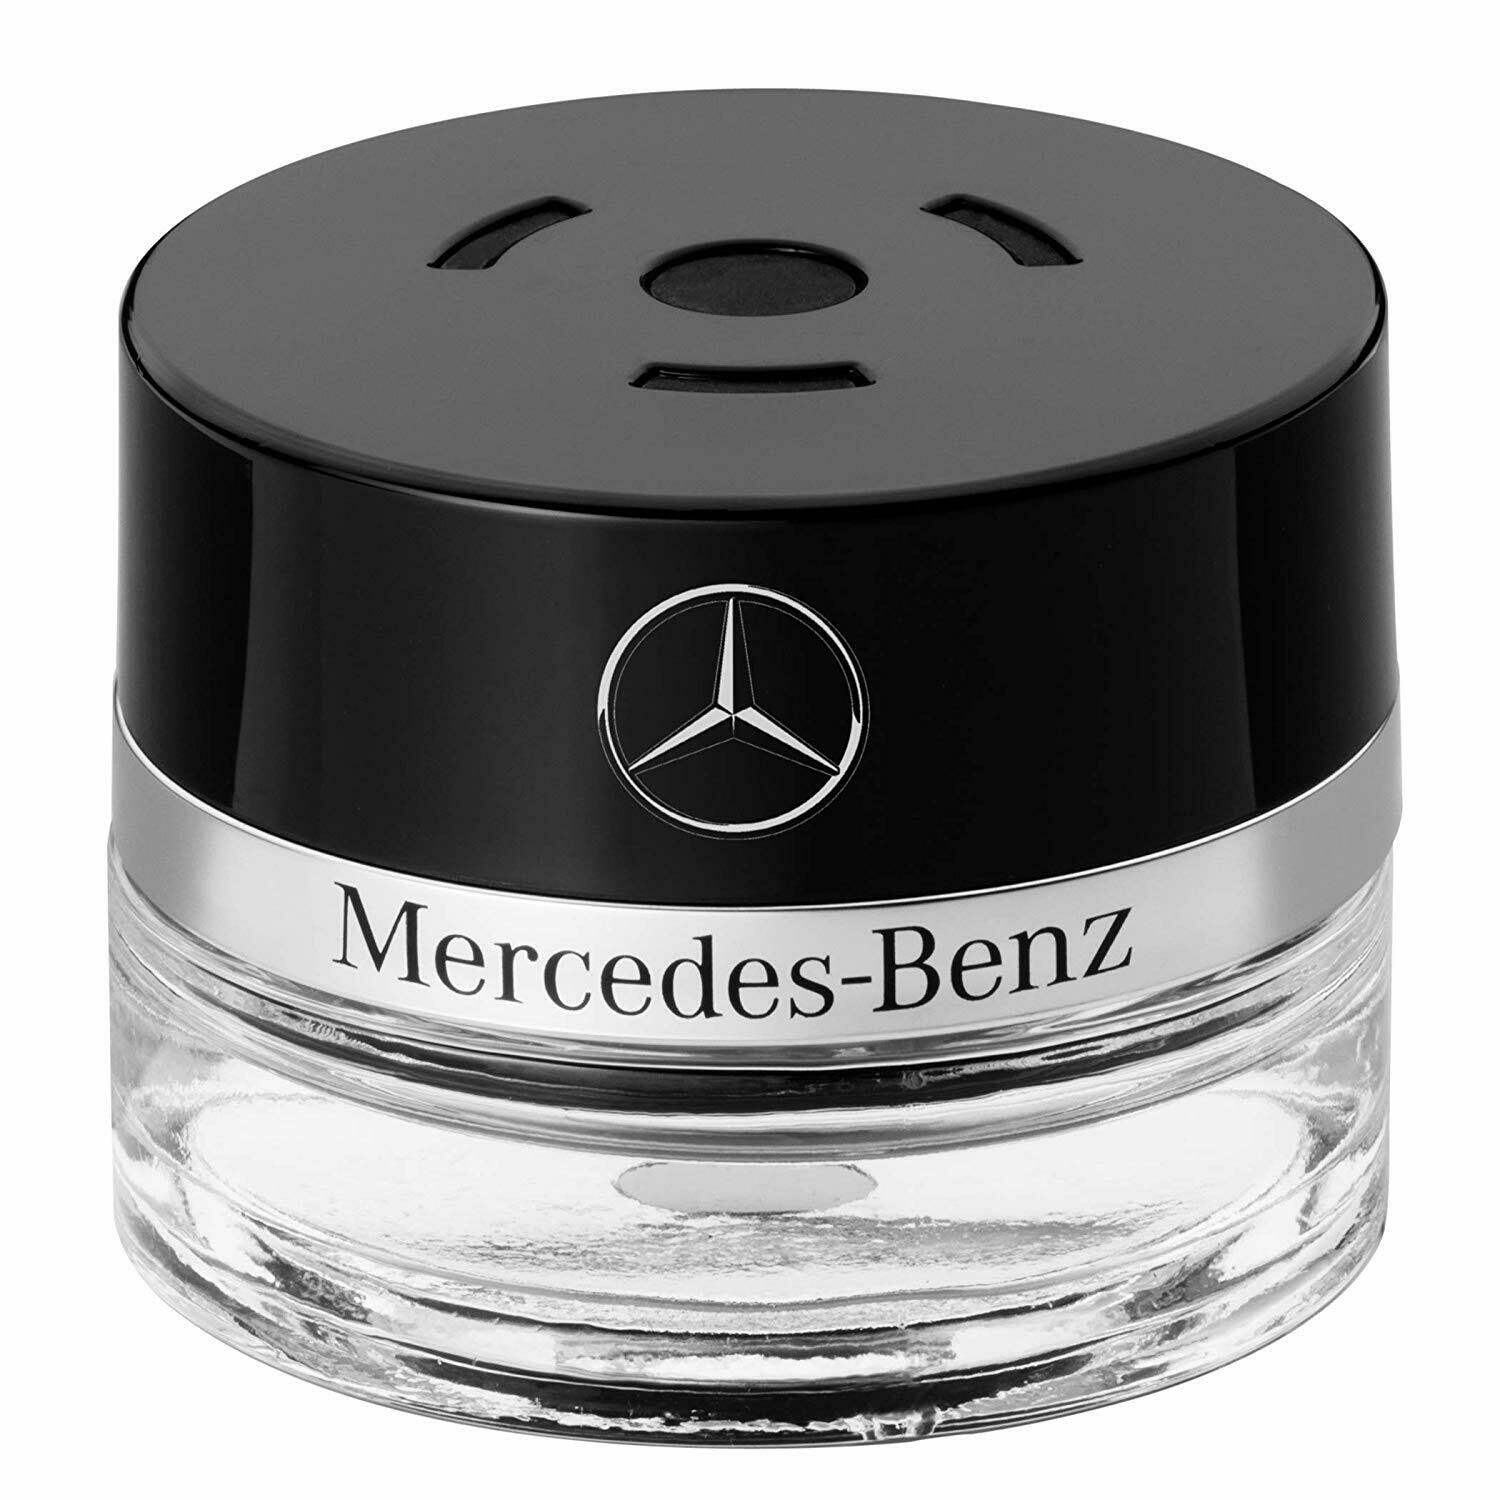 Mercedes-Benz Air Spencer Forest Mood